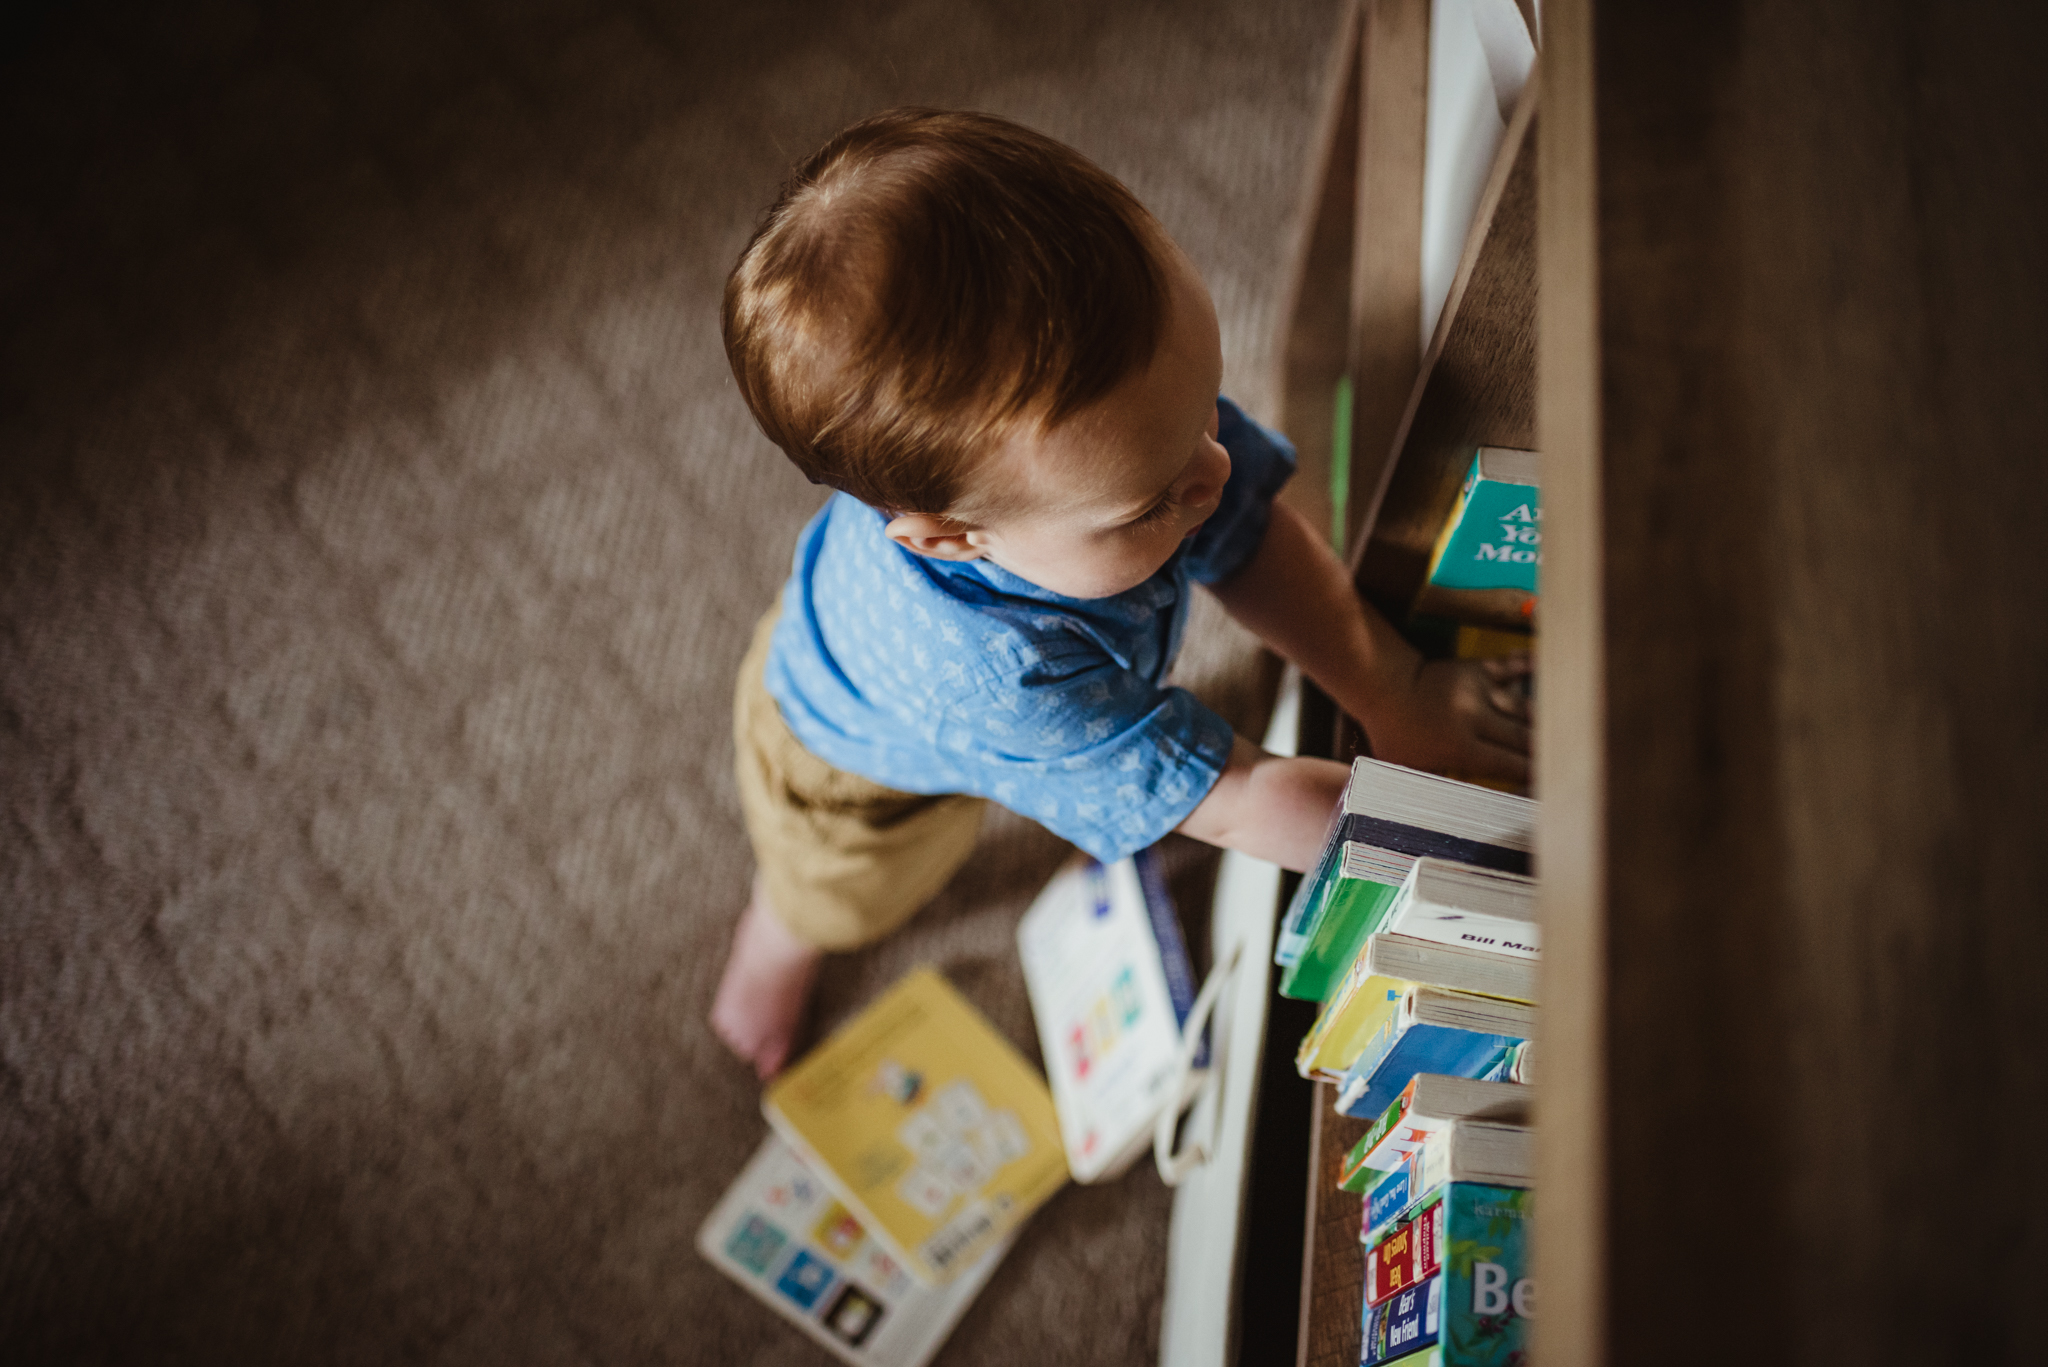 Baby stands at the book shelf knocking down books during their lifestyle session at home in Wake Forest with Rose Trail Images.